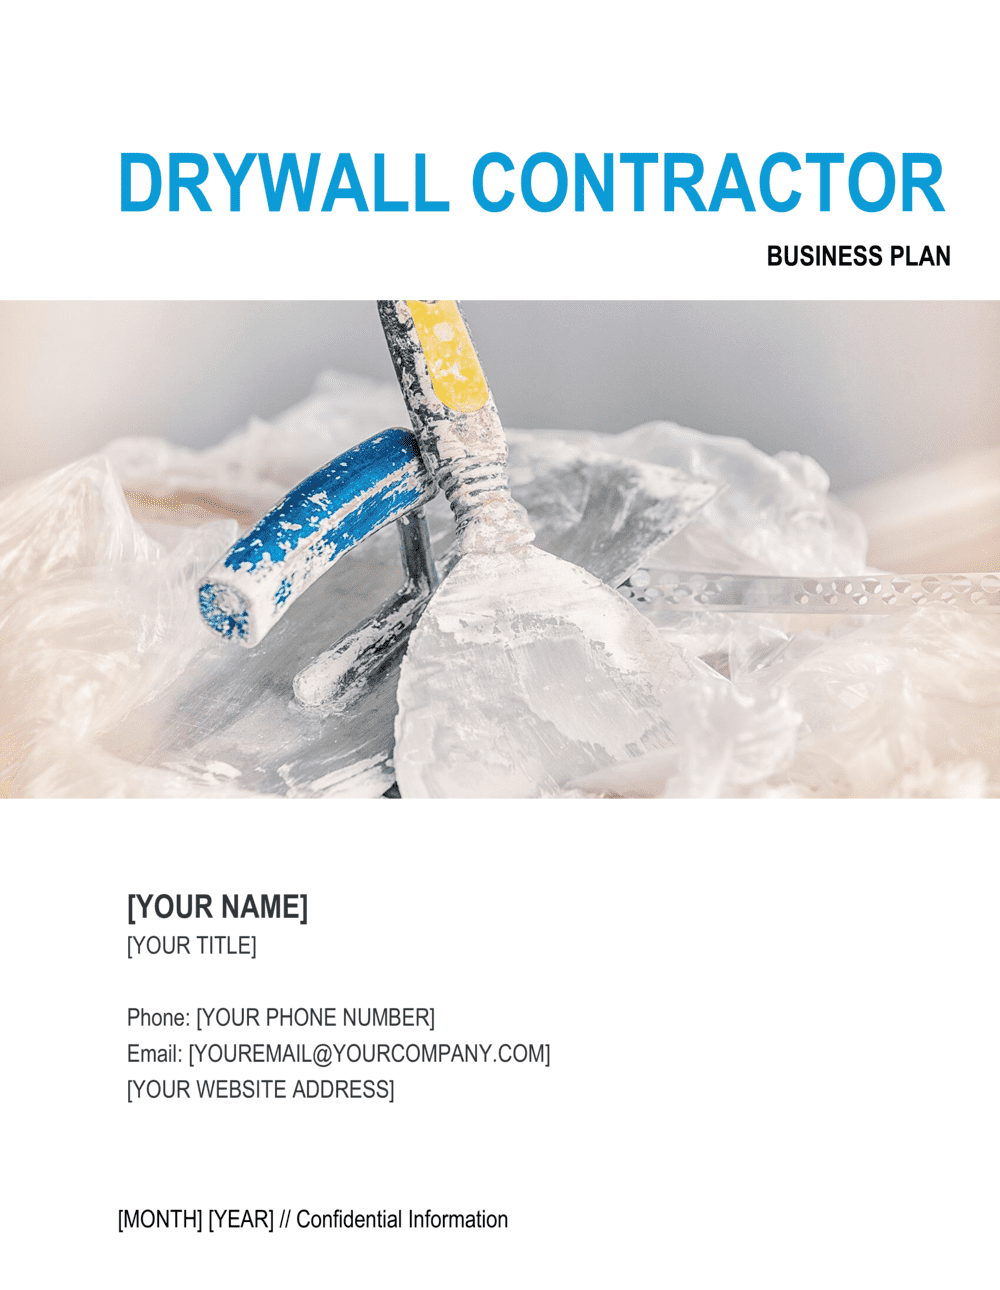 Business-in-a-Box's Drywall Contractor Business Plan Template